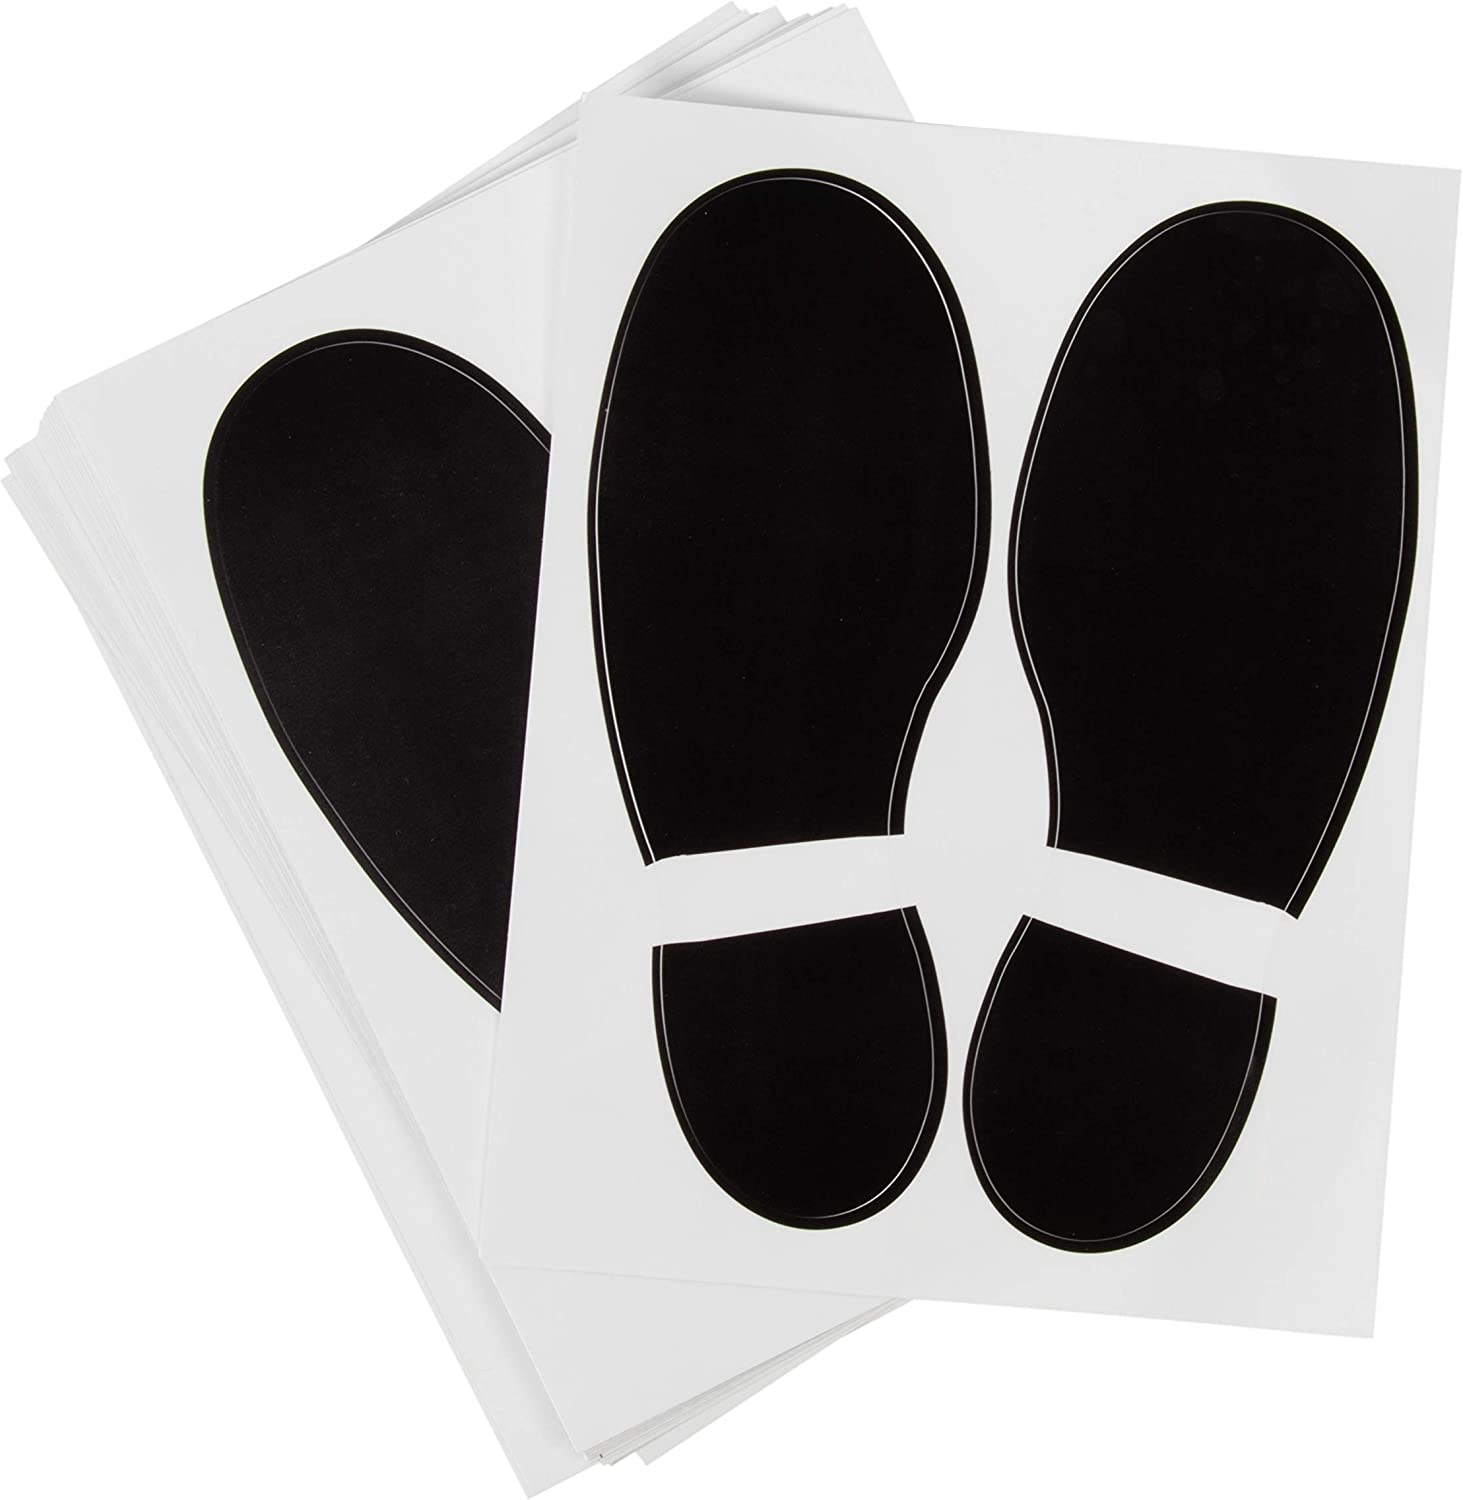 Juvale Footprint Stickers - 32-Pairs Footprint Decal Self-Adhesive Stickers for School, Dance Studio, Party, Floor Stickers Party Accessories, Black, 7.1 x 2.6 Inches